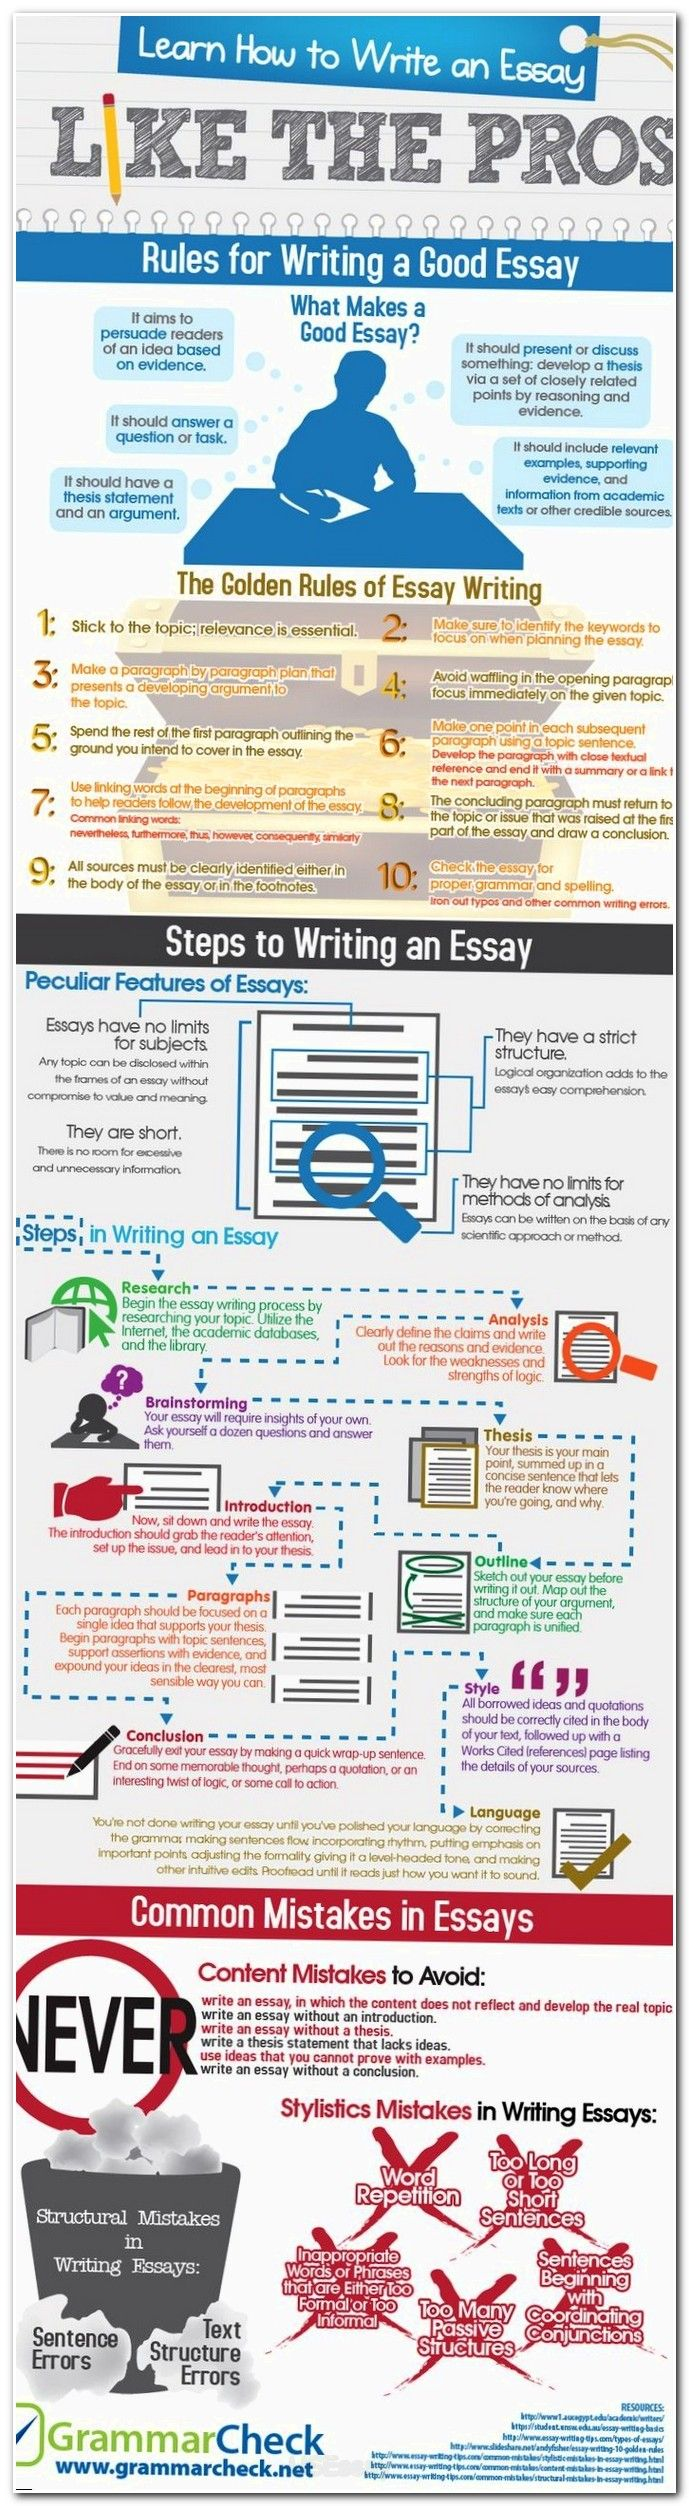 best thesis sentence example ideas essay   essay wrightessay music important in our life sample paper of ielts writing